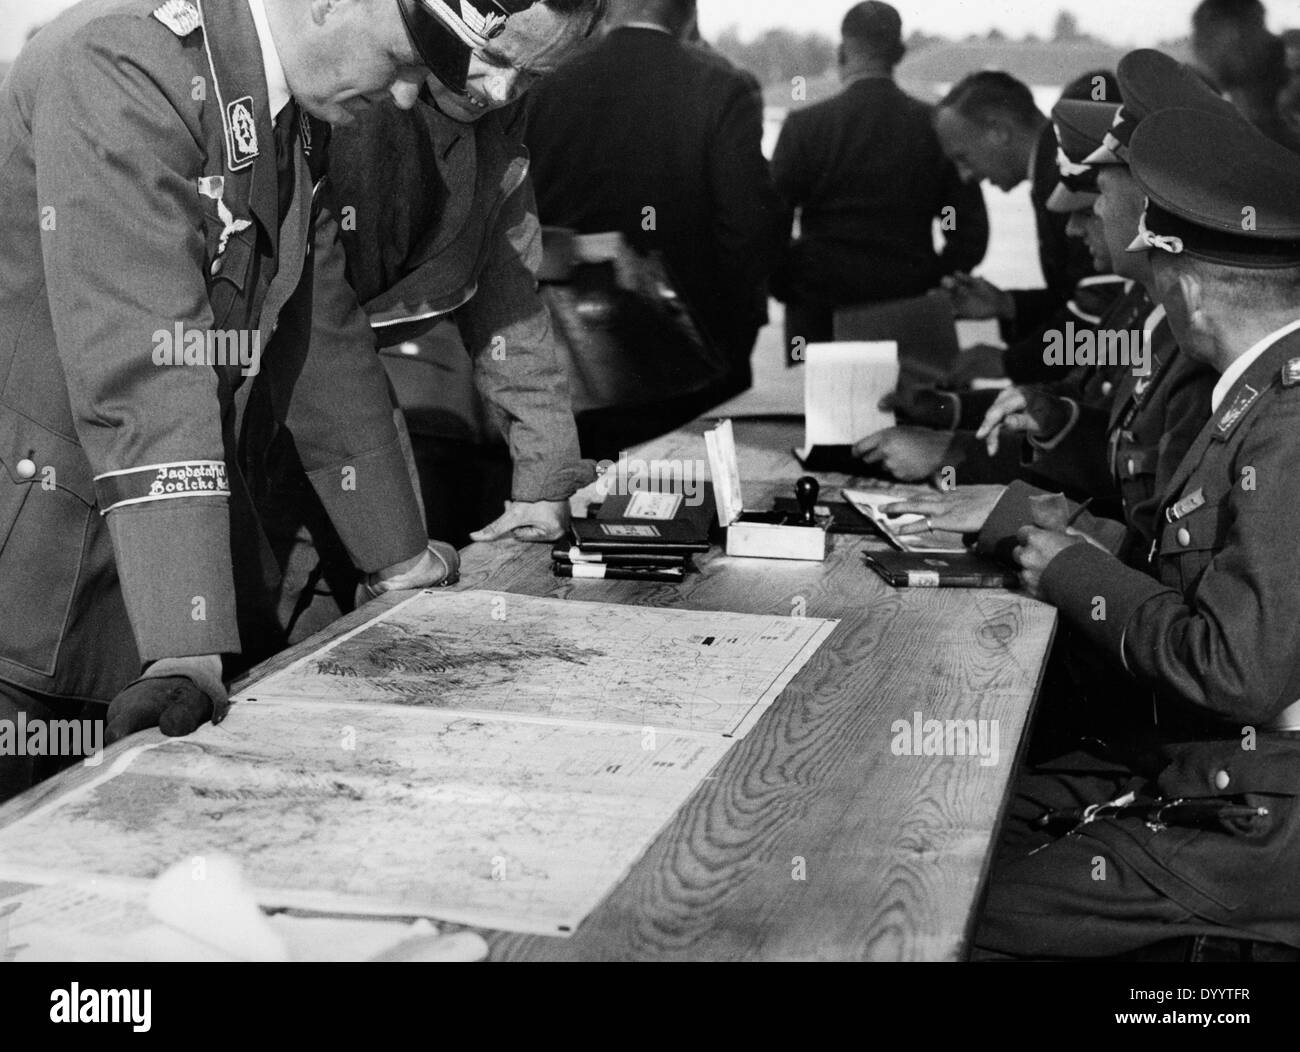 German flying competition 'Deutschlandflug', 1937 - Stock Image